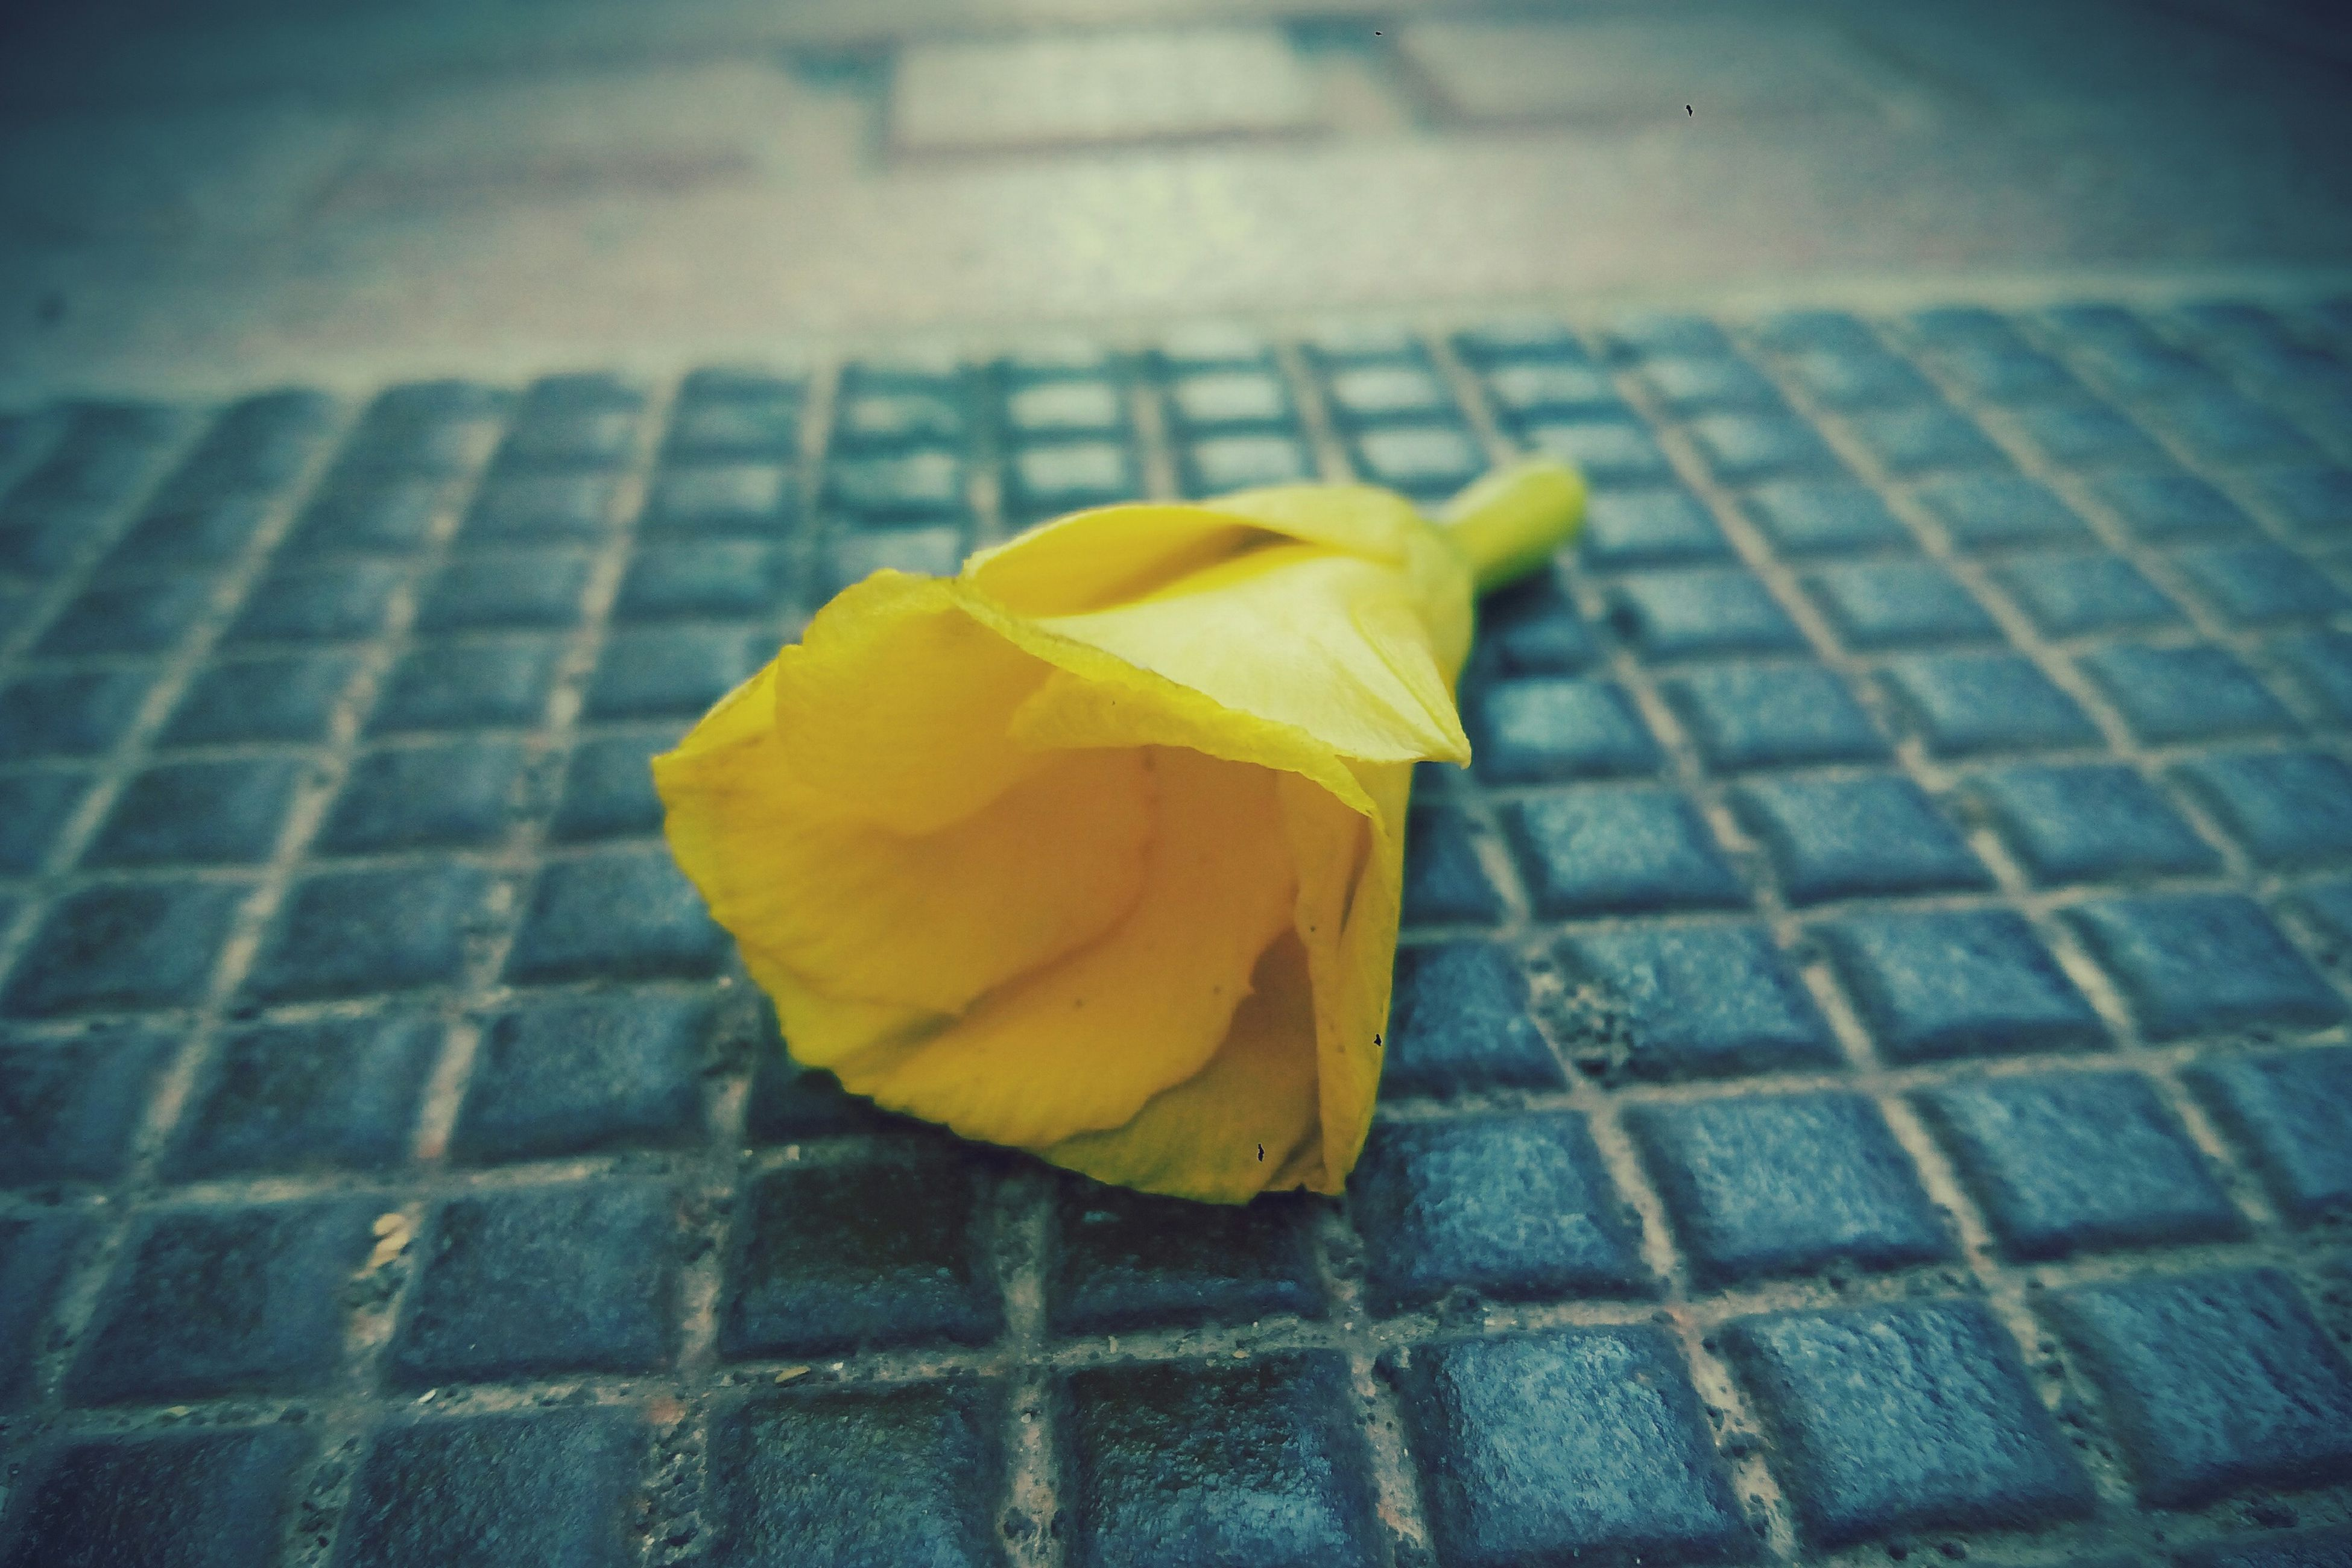 yellow, high angle view, single object, season, close-up, leaf, change, flooring, footpath, focus on foreground, day, no people, fragility, tranquility, stone material, symbol